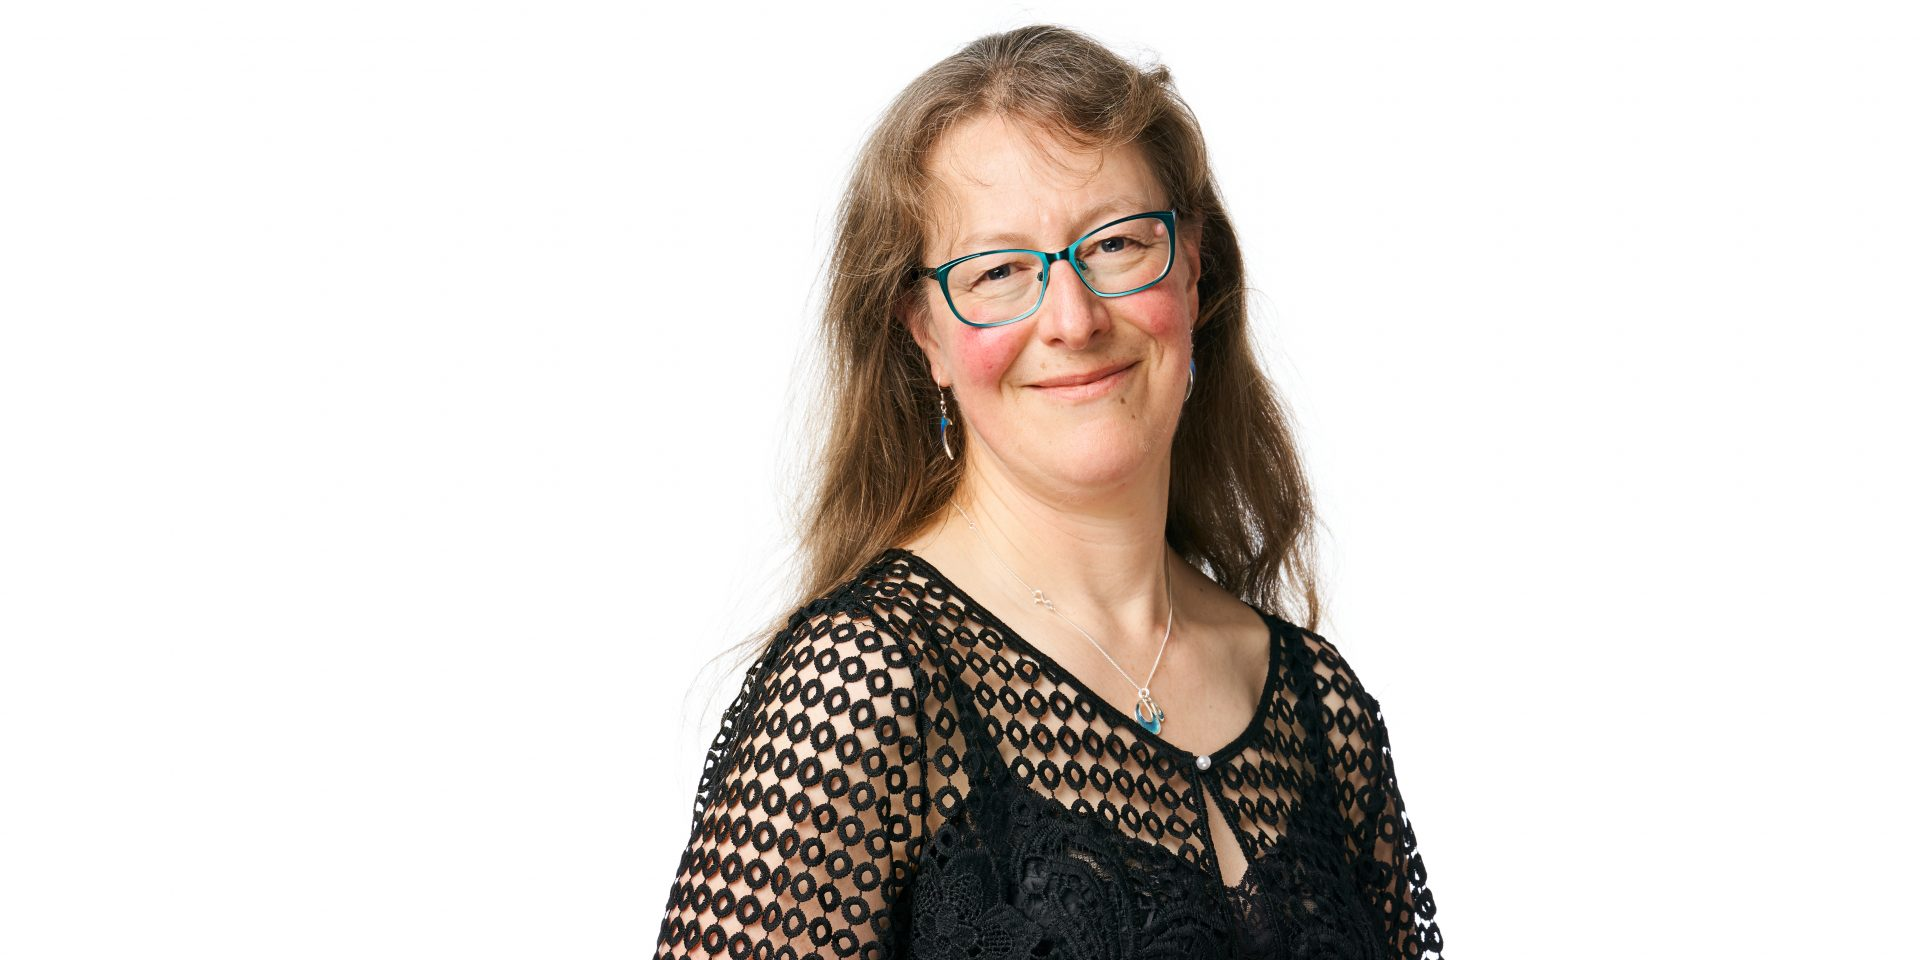 SPECIAL COMMENDATION TO RSNO MUSICIAN FROM SALOMON PRIZE COMMITTEE